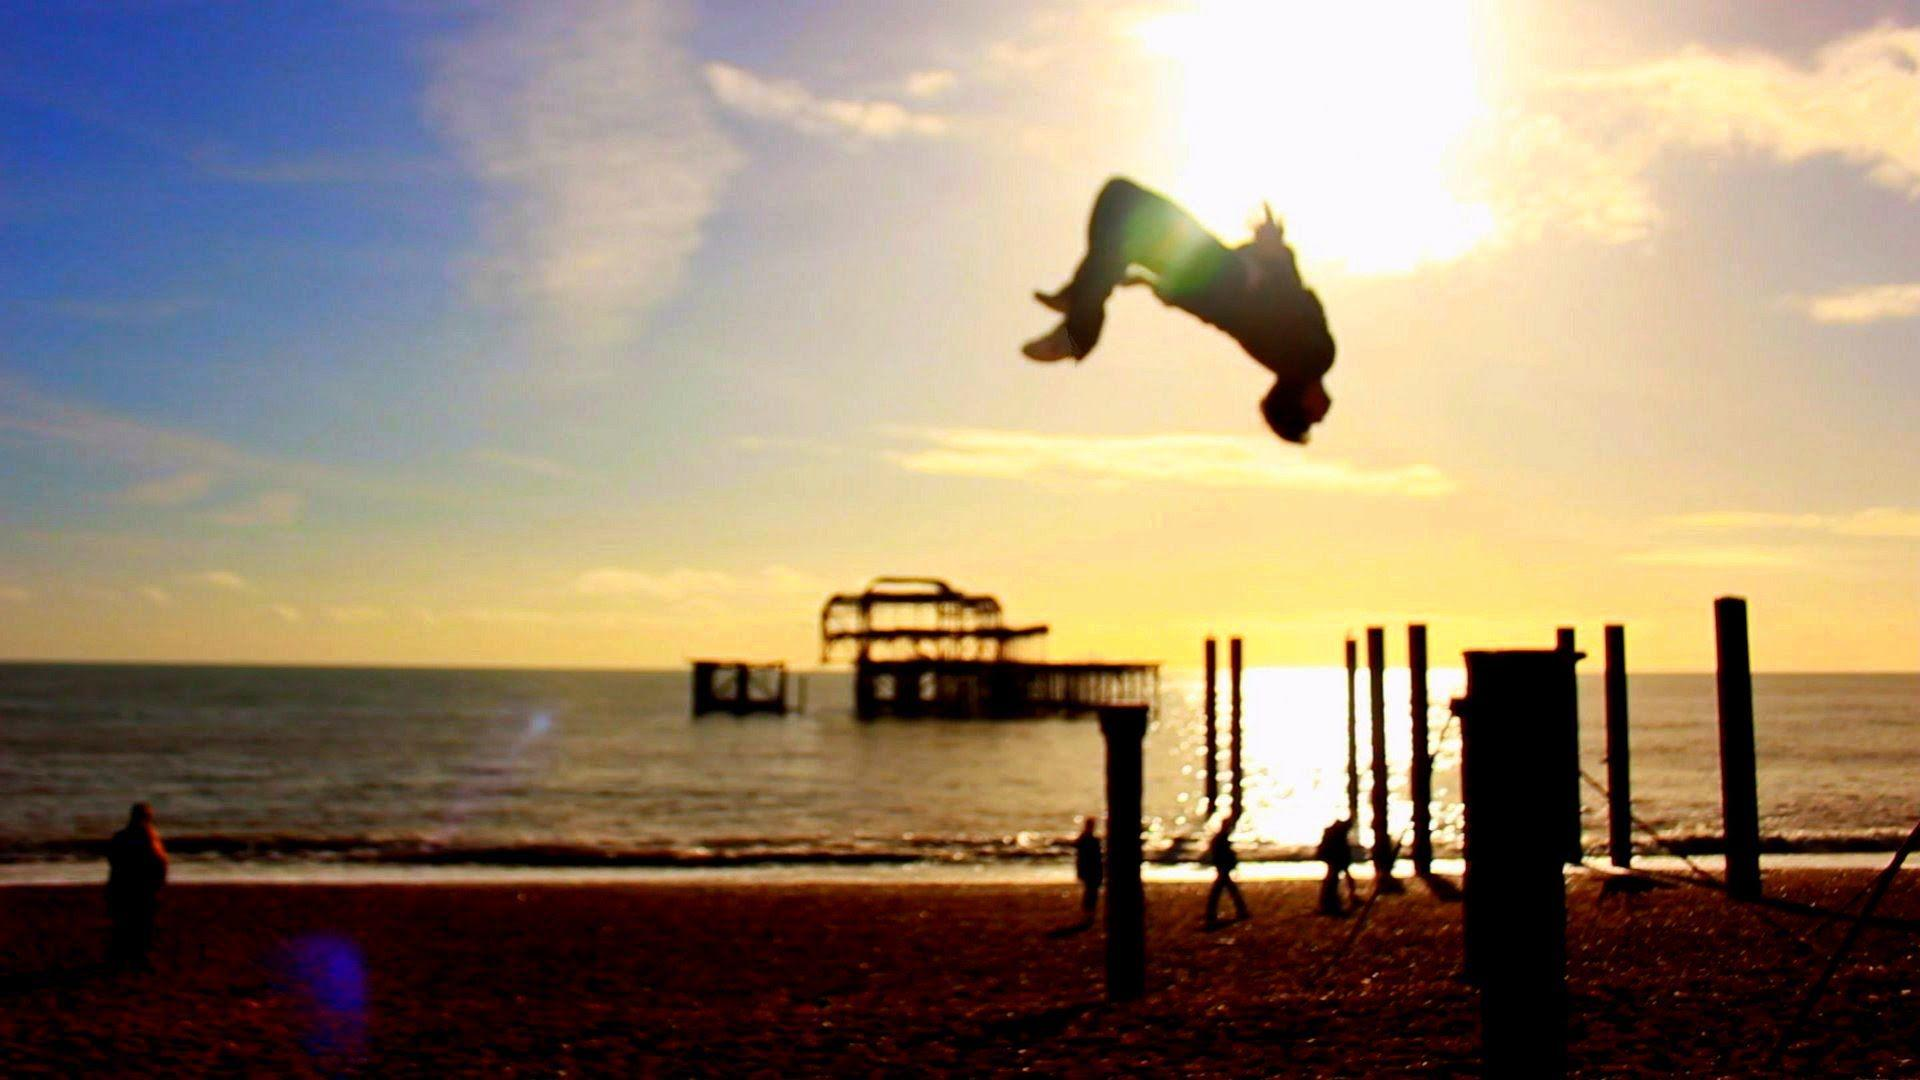 Freestyle: Free Running/Parkour - YouTube